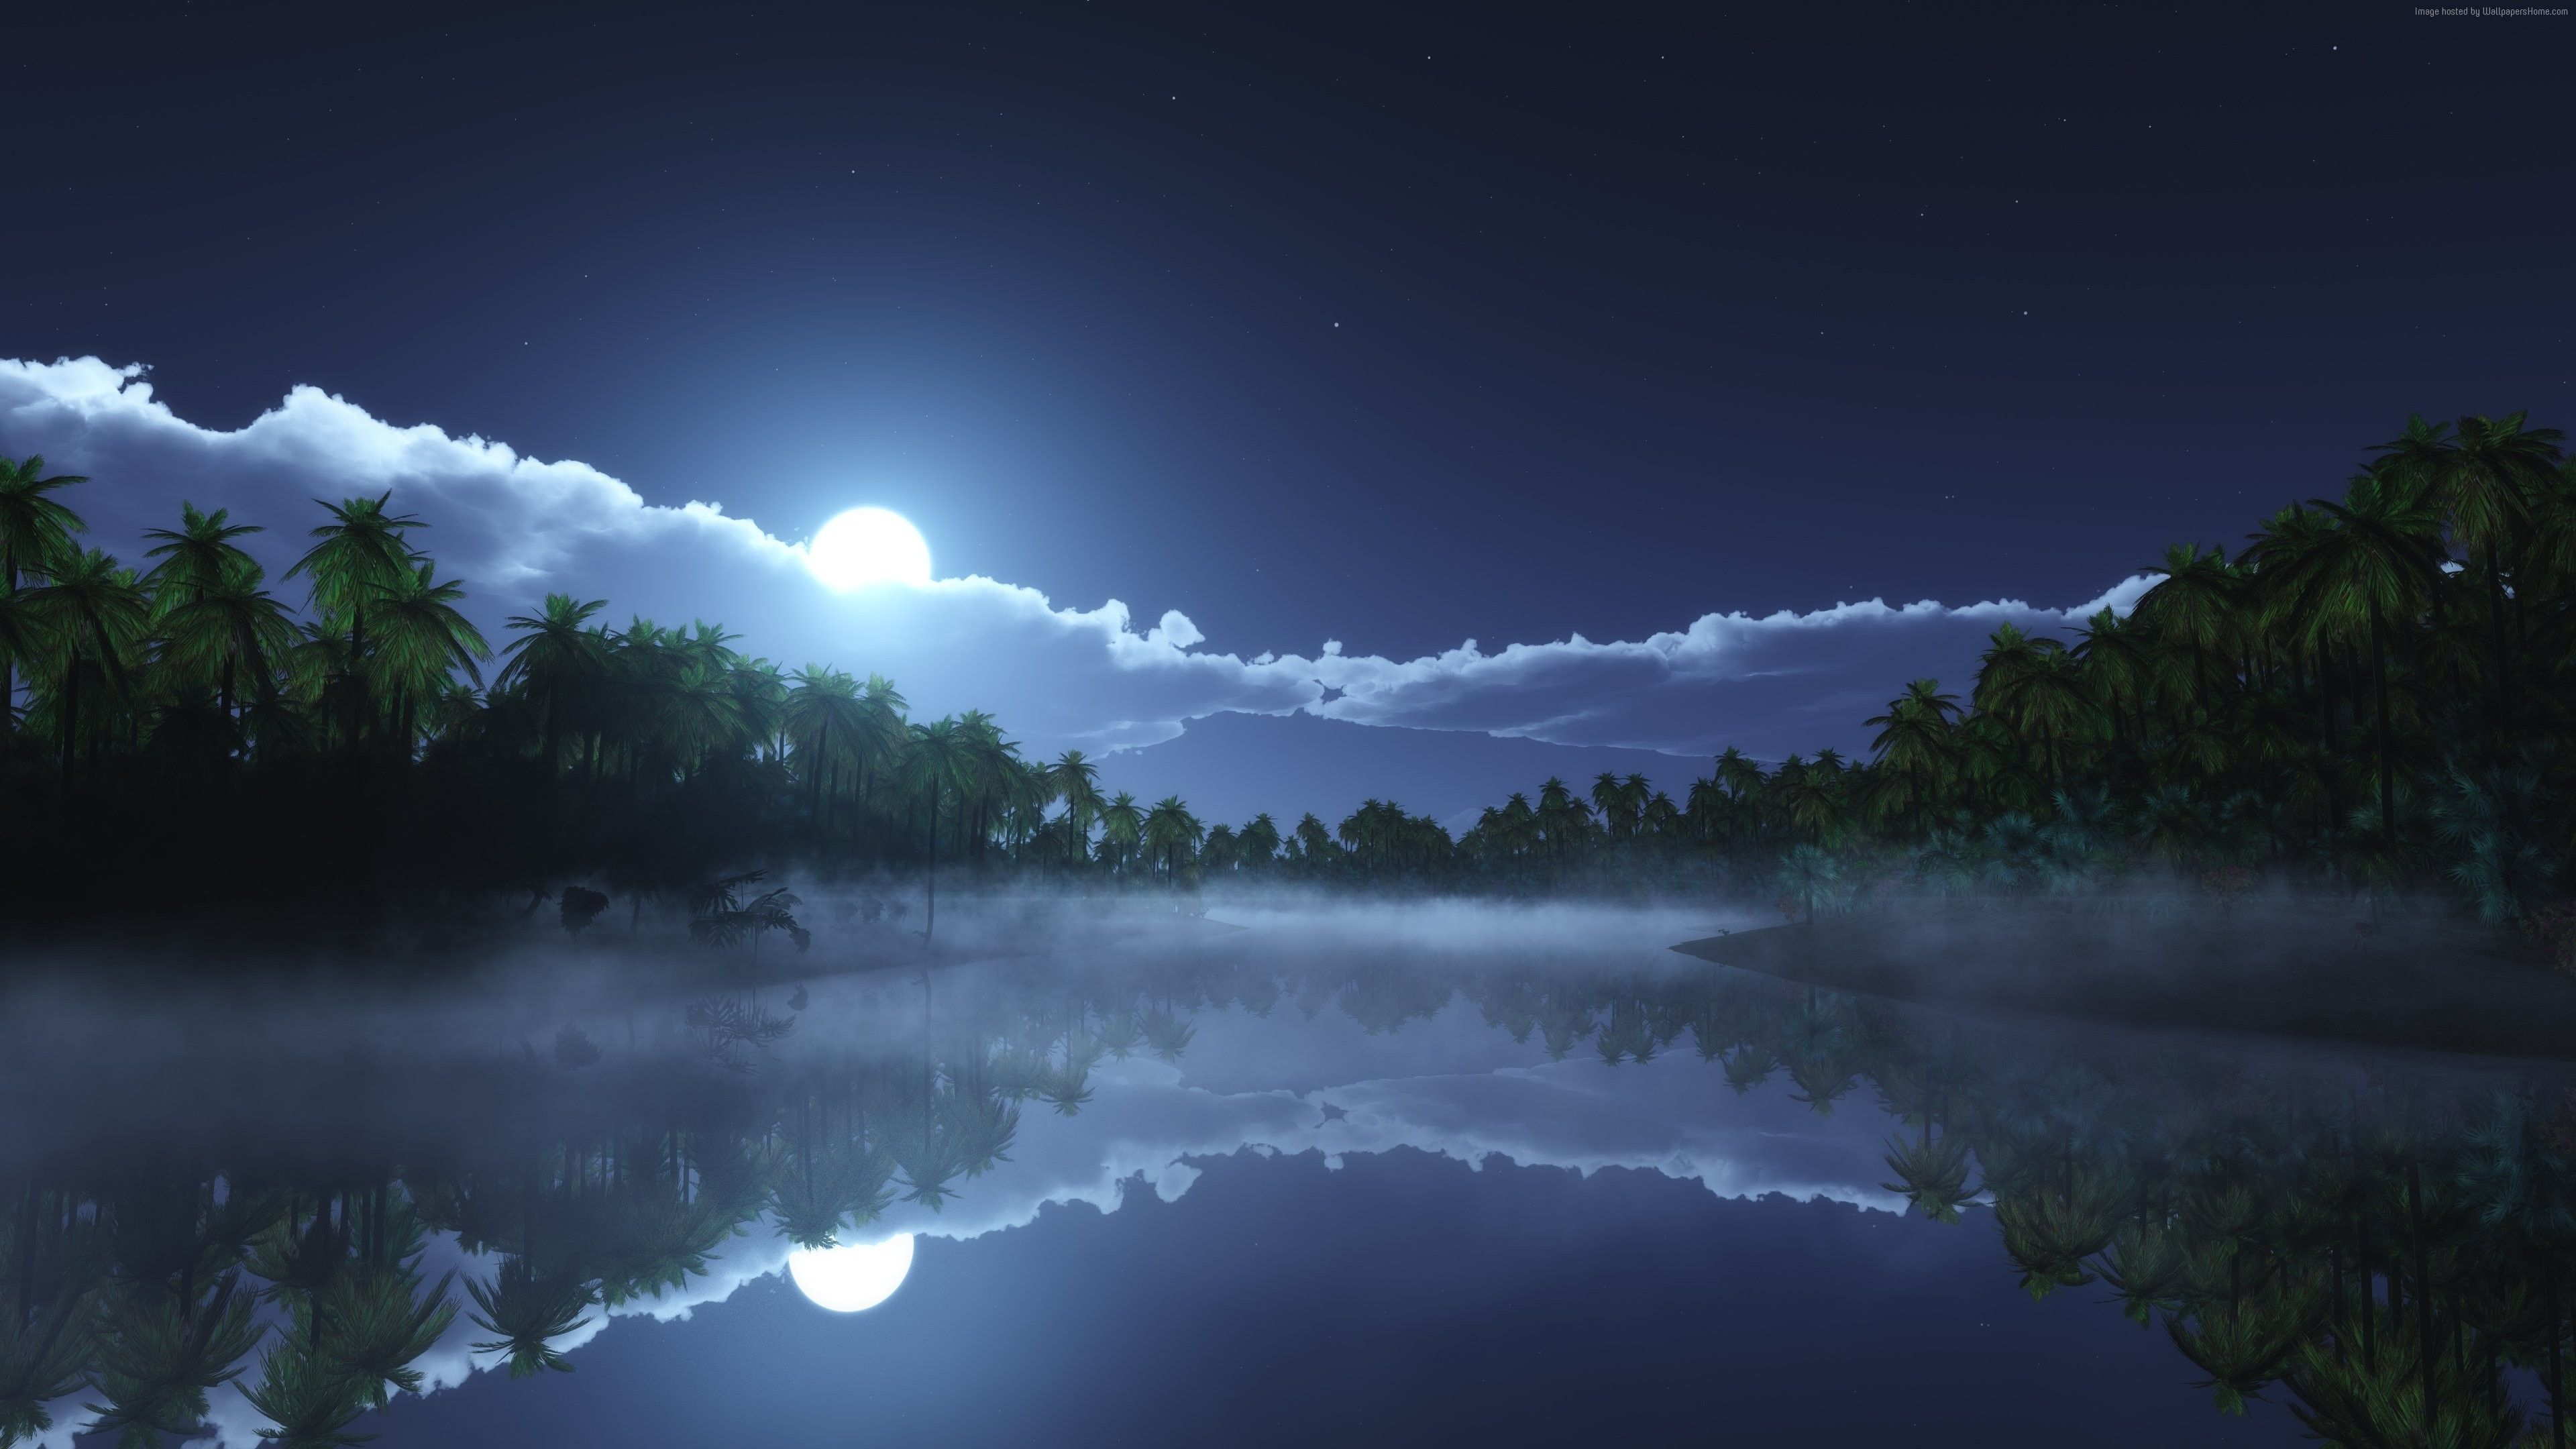 Awesome Moon Night View 4k Wallpaper Beautiful Nature Water